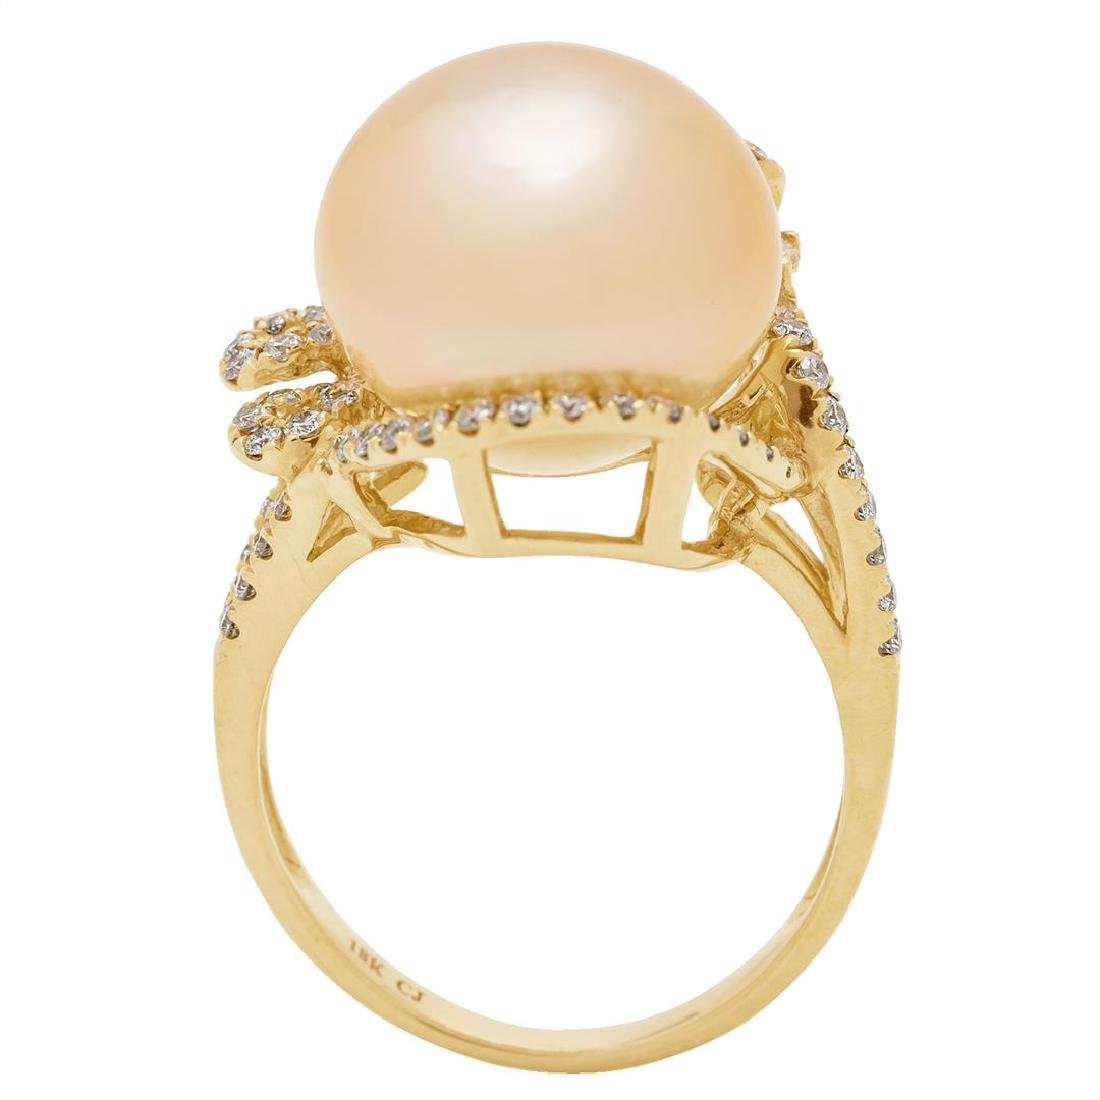 0.59 ctw Diamond and Pearl Ring - 18KT Yellow Gold - 4